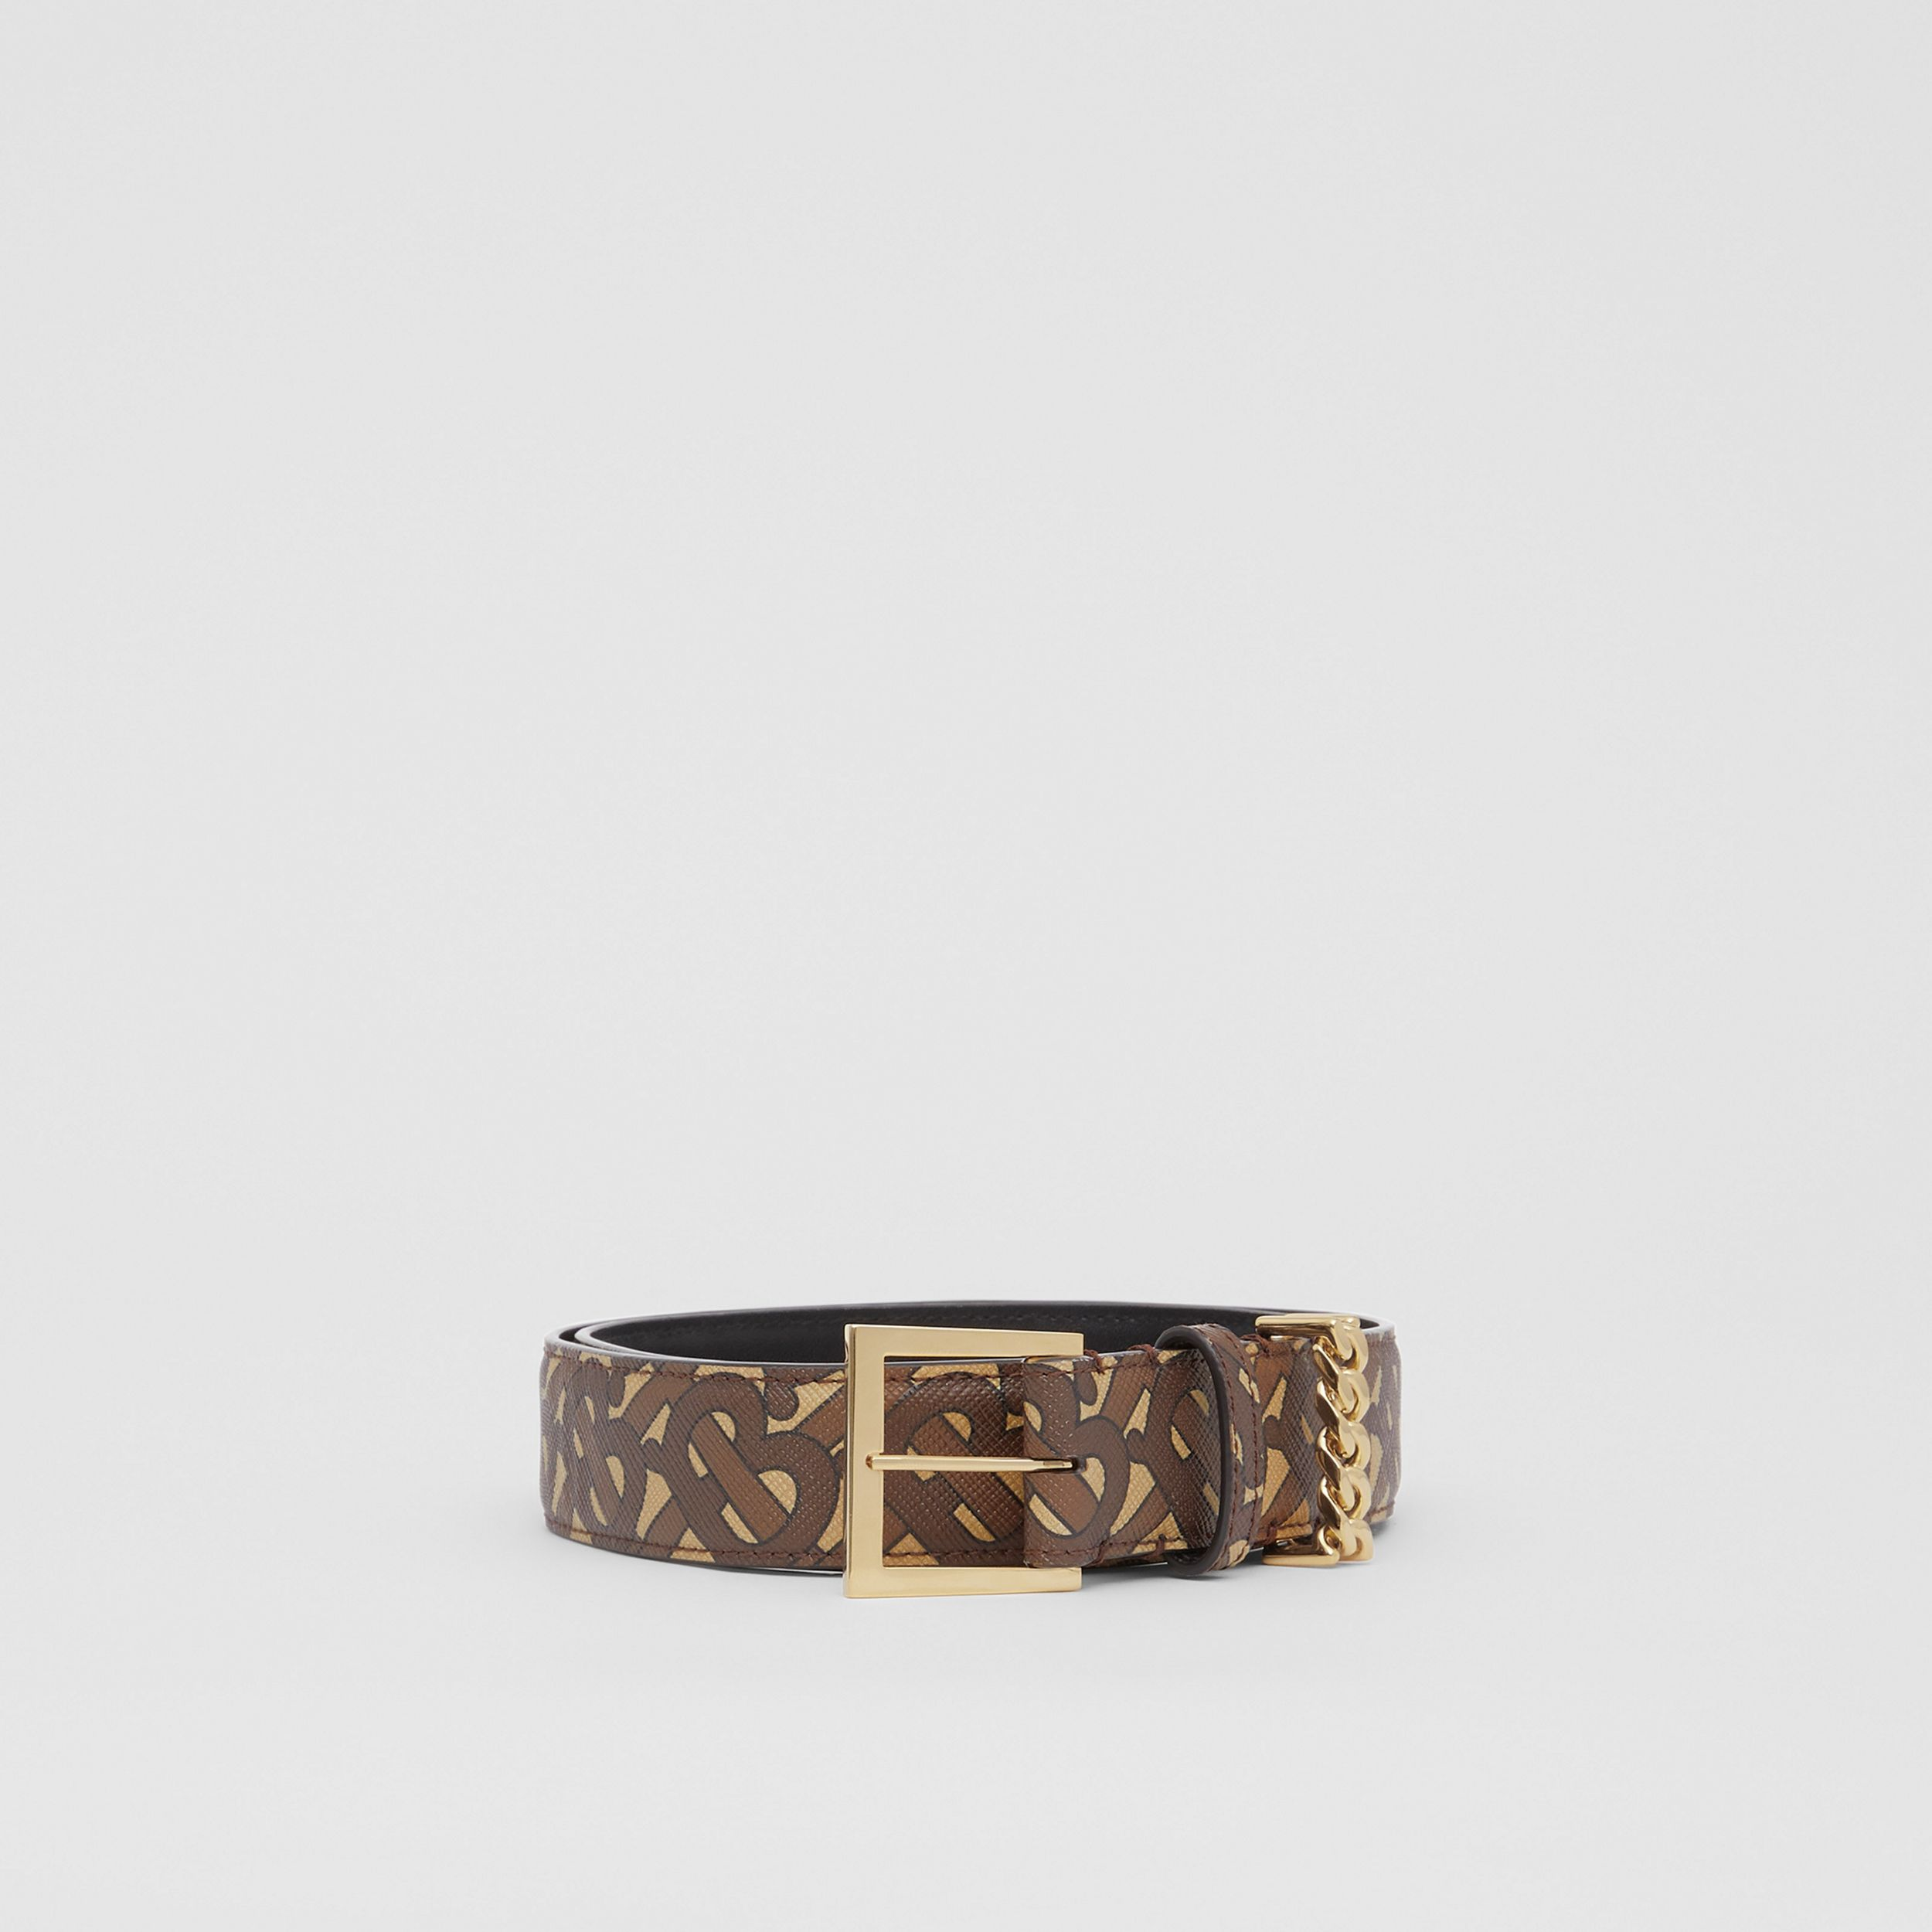 Chain Detail Monogram Print E-canvas Belt in Bridle Brown | Burberry - 4